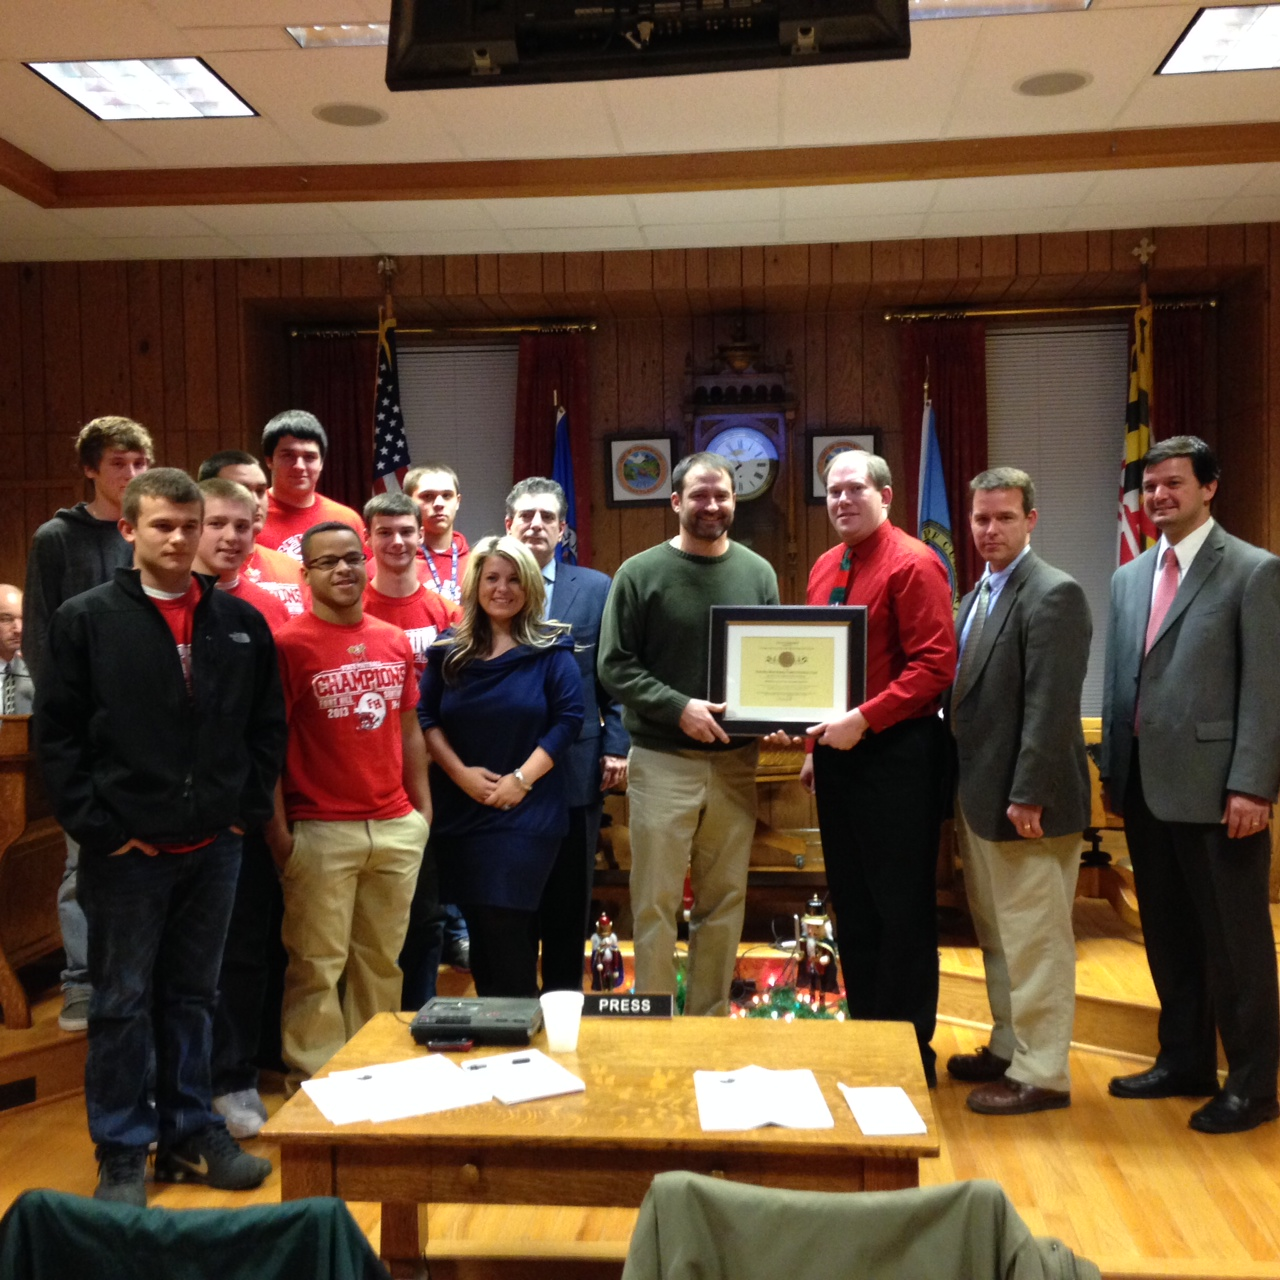 Mayor Grim Presents a Certificate of Recognition to Top Coach Todd Appel and the Fort Hill High Scho